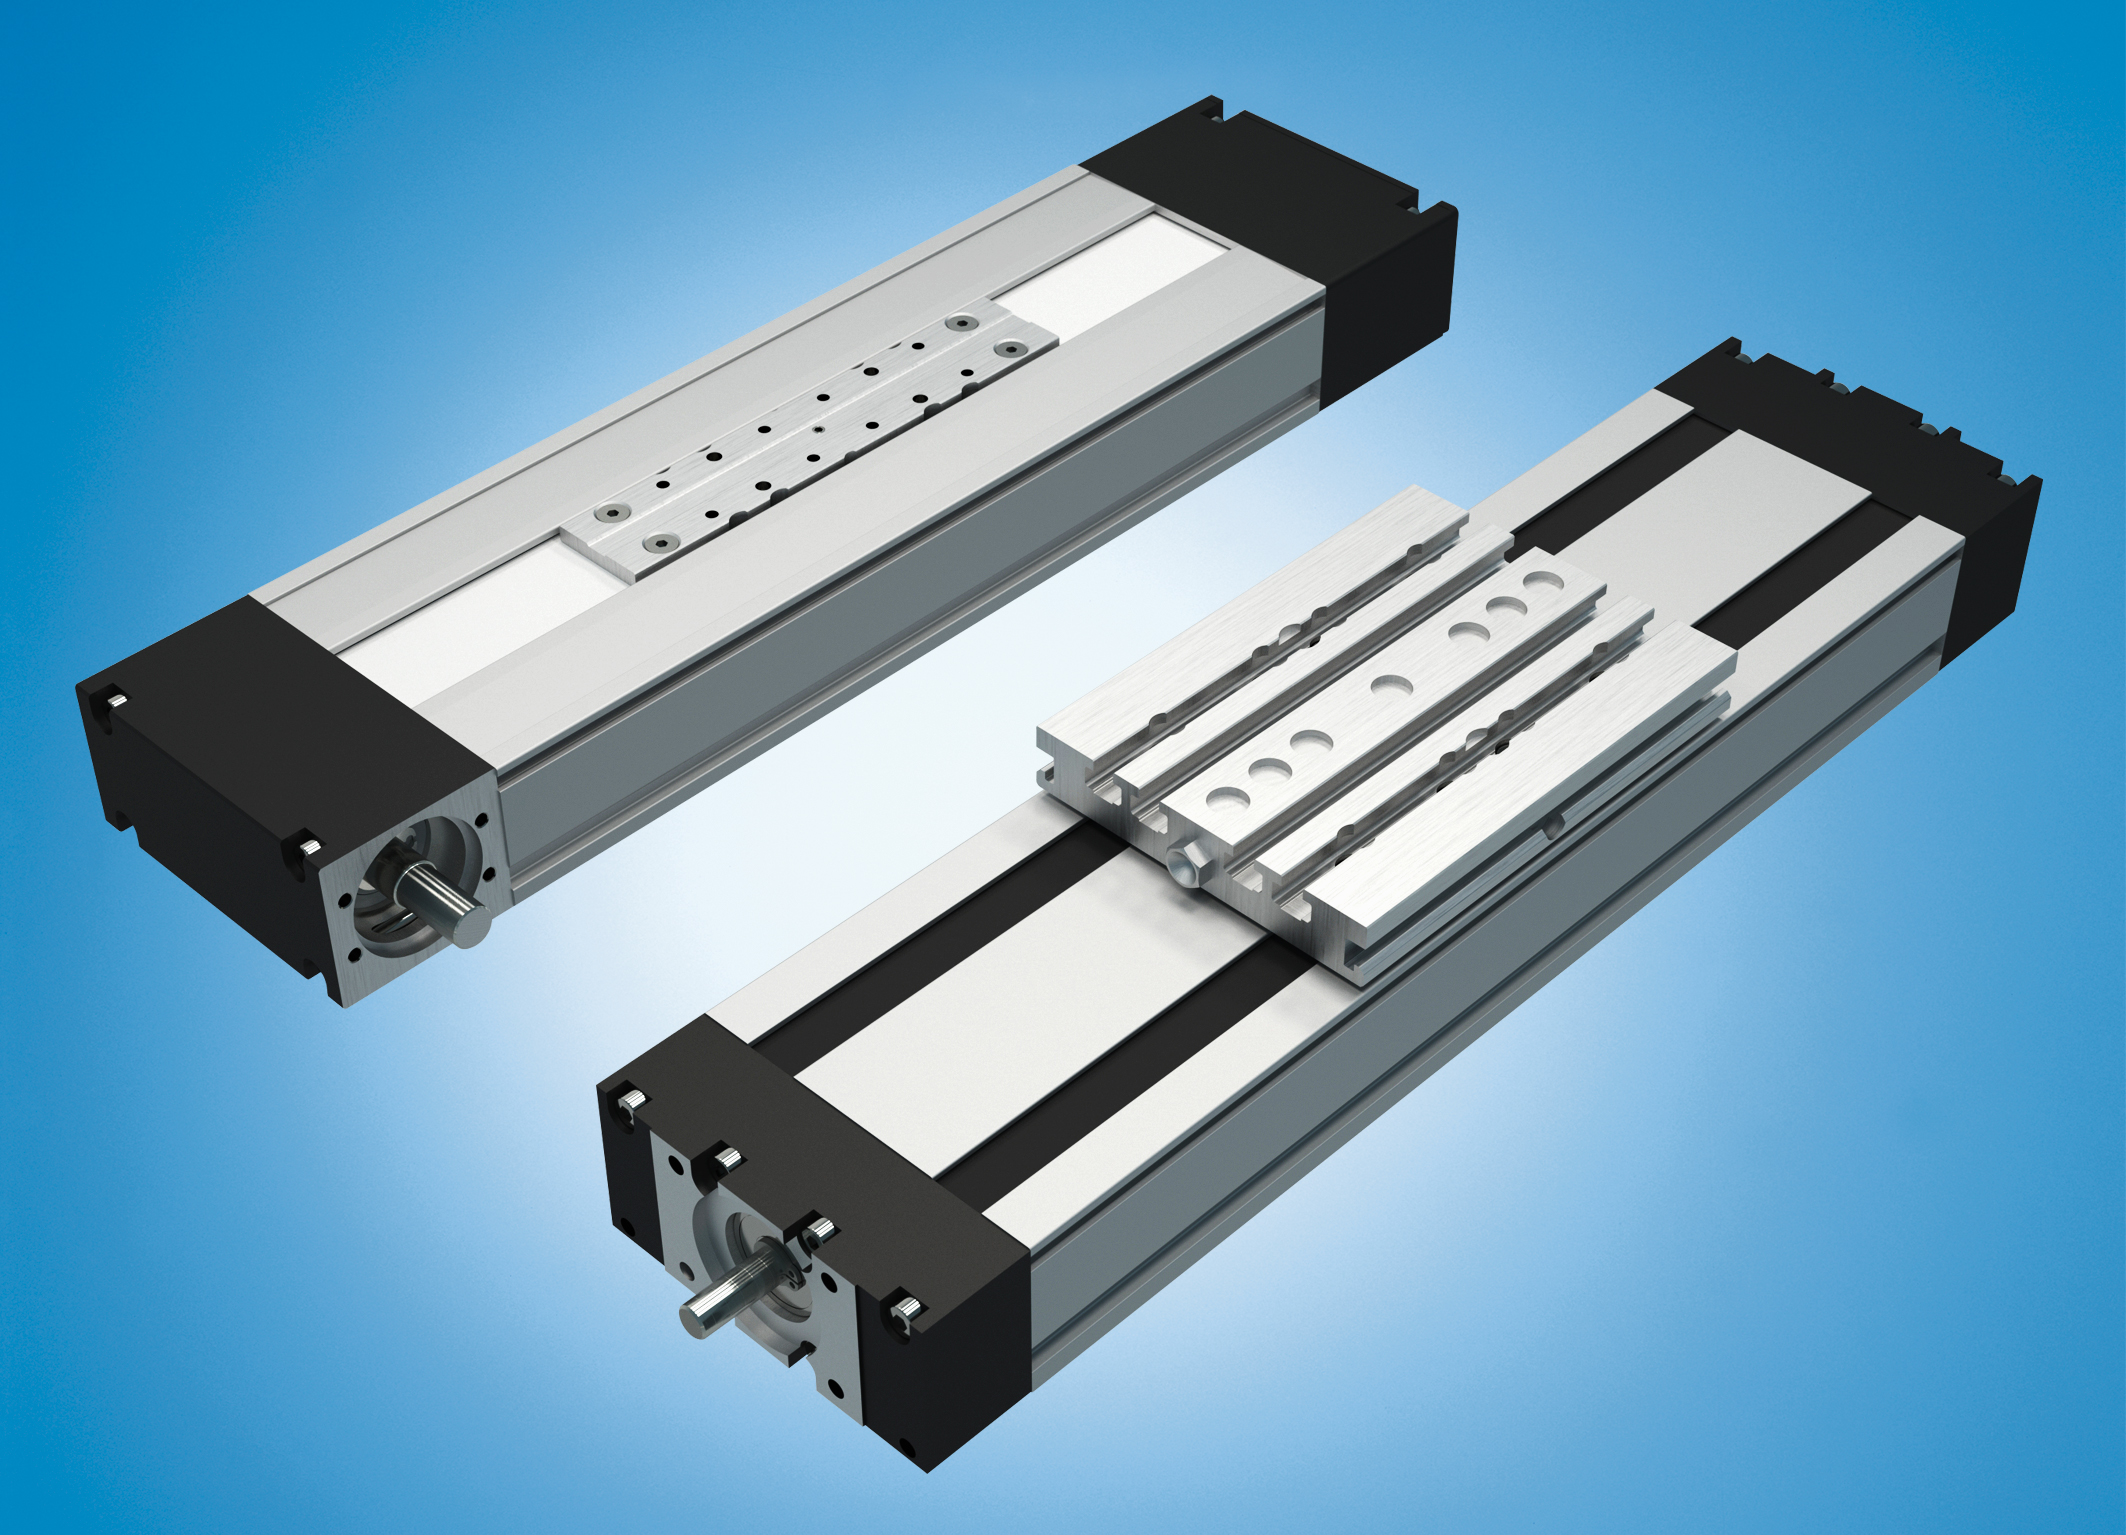 Rexroth Ckk And Ckr Family Of Compact Modules Ideal For